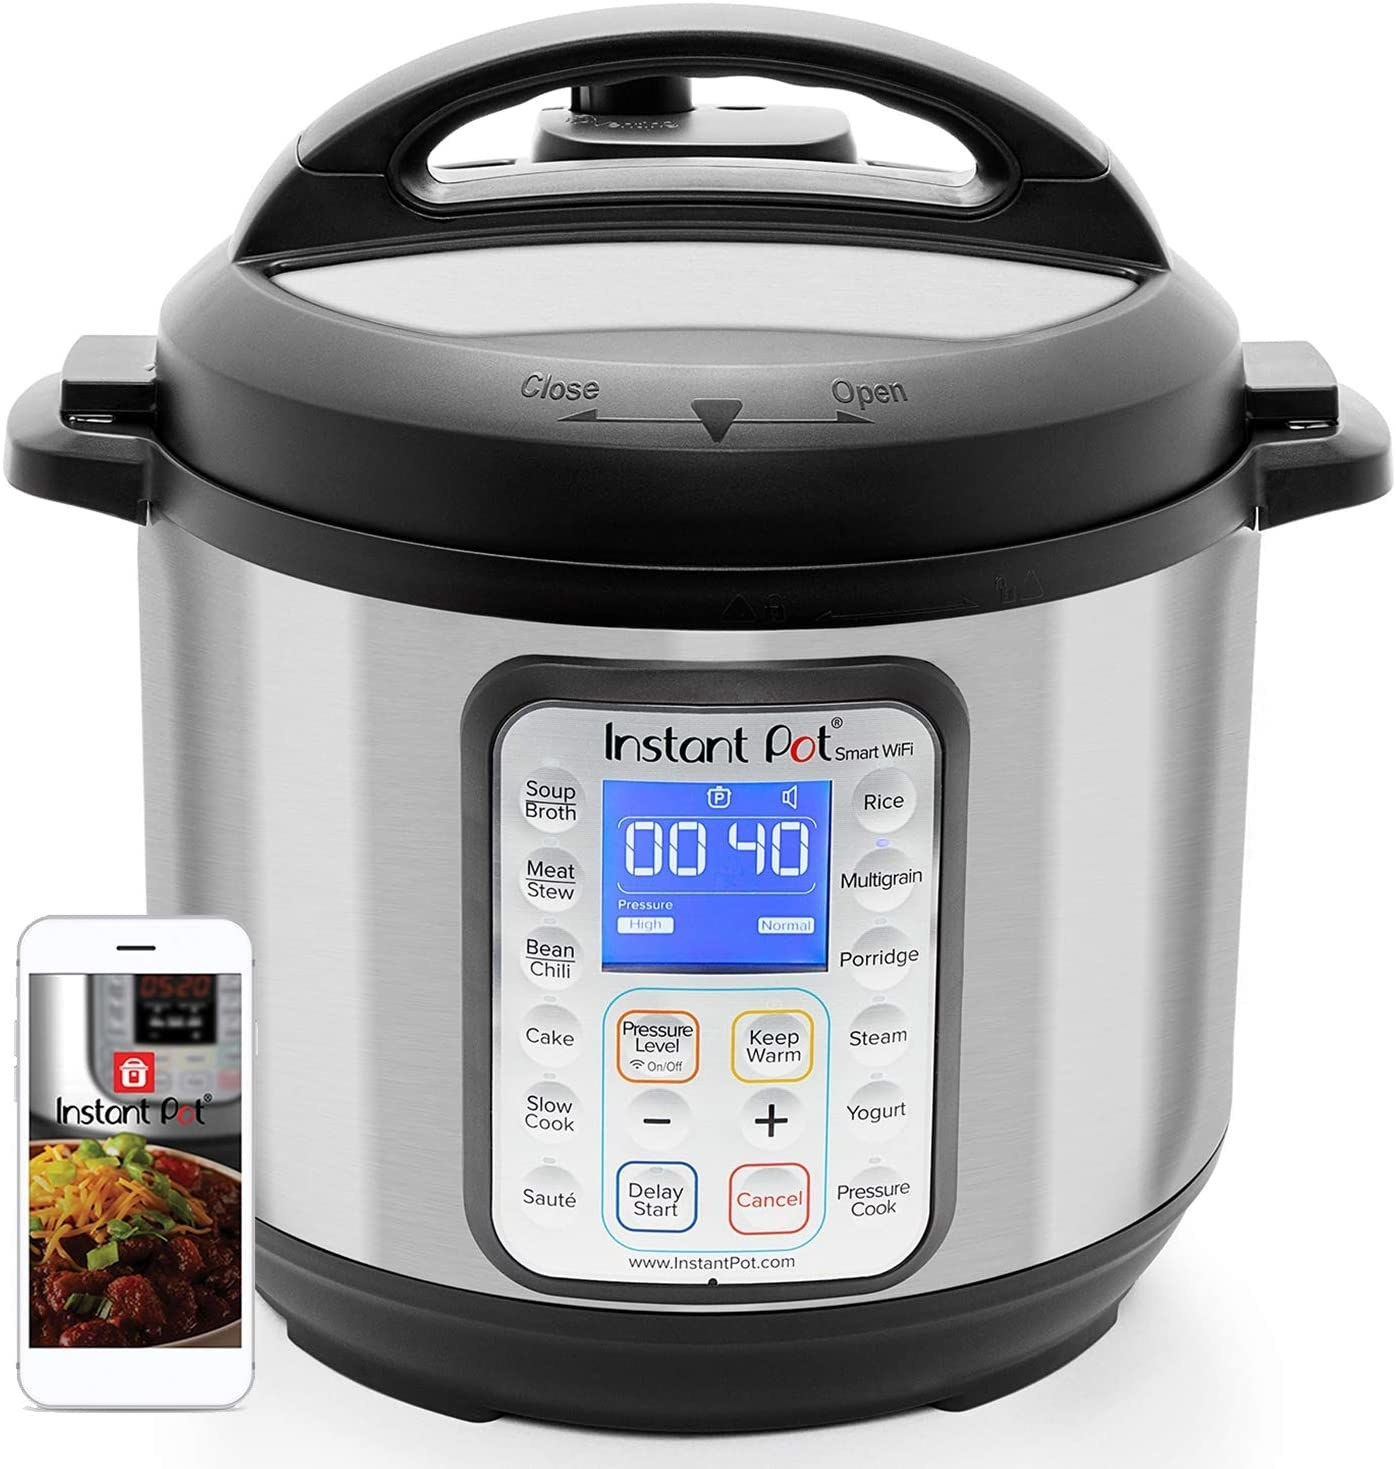 Instant Pot and a smartphone displaying the Instant Pot app isolated on a white background